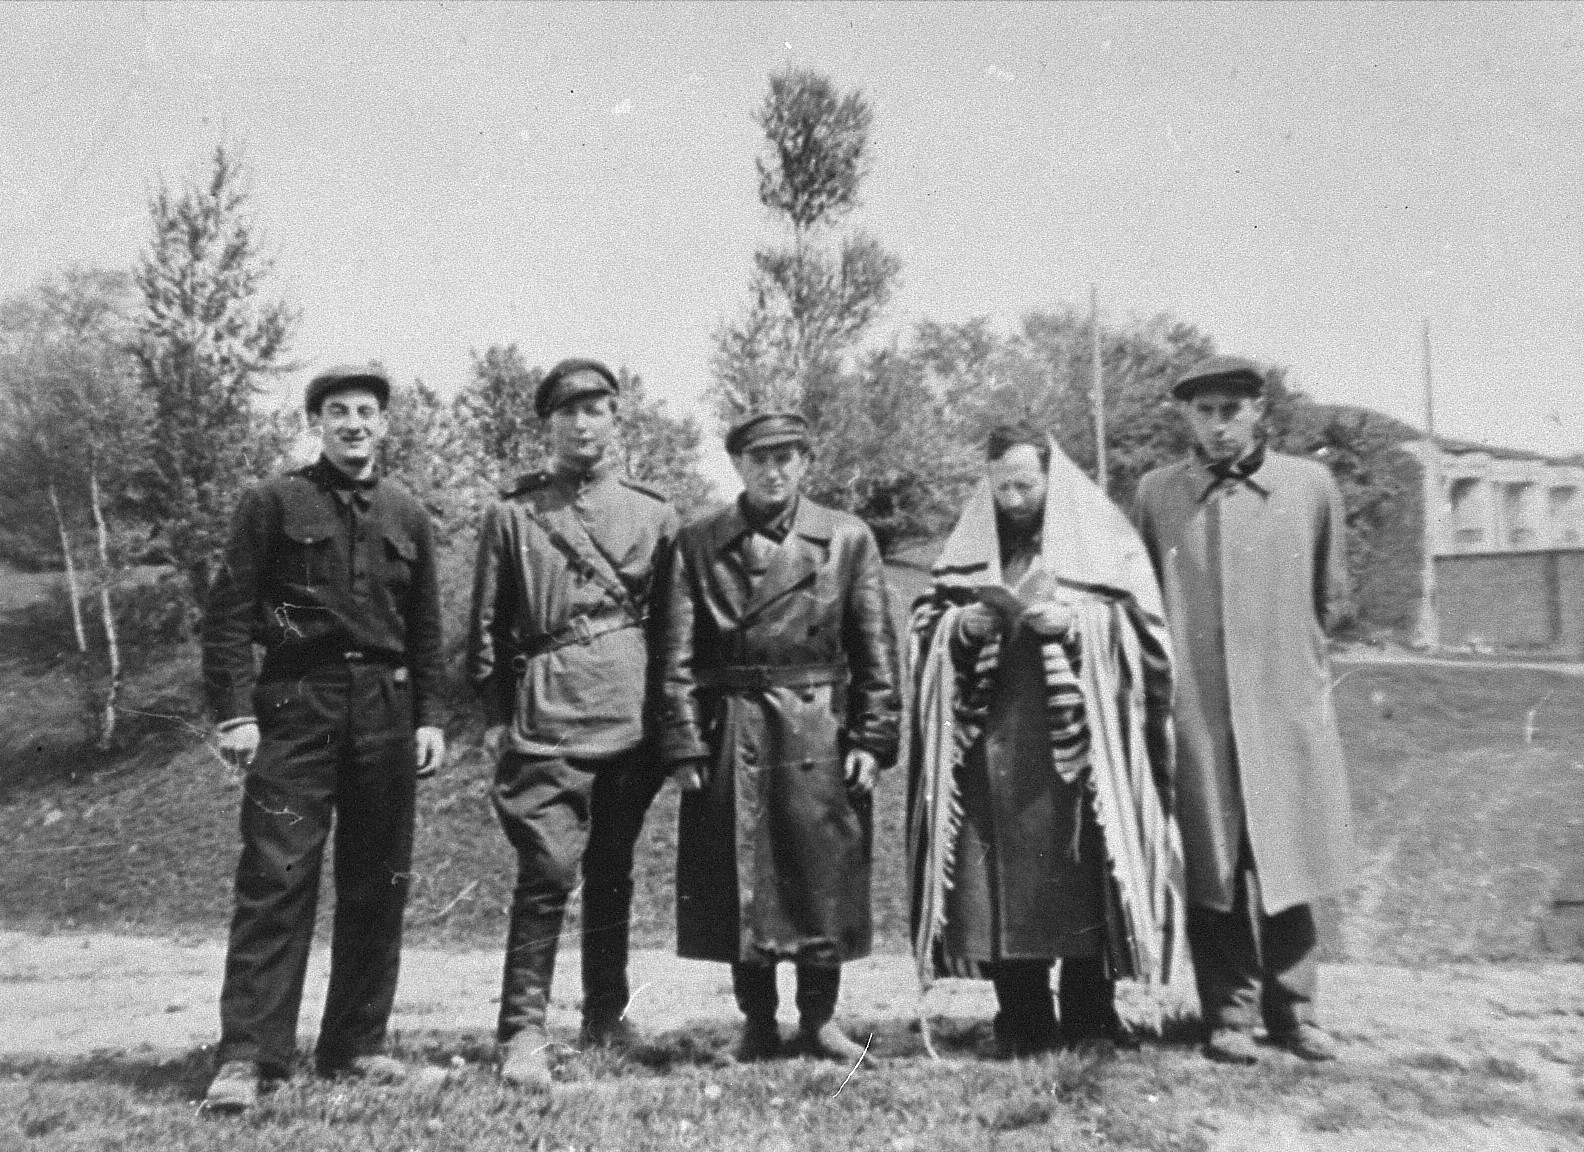 Rabbi Ephraim Oshry conducts a memorial service at Fort IX ten months after the liberation.  With him are four participants in the Christmas 1943 escape from the fortress.   Pictured from left to right are: Pinia Krakinovski, Israel Gitlin, Berl Gempel, Rabbi Ephraim Oshry, and Wladyslaw Blum (?).